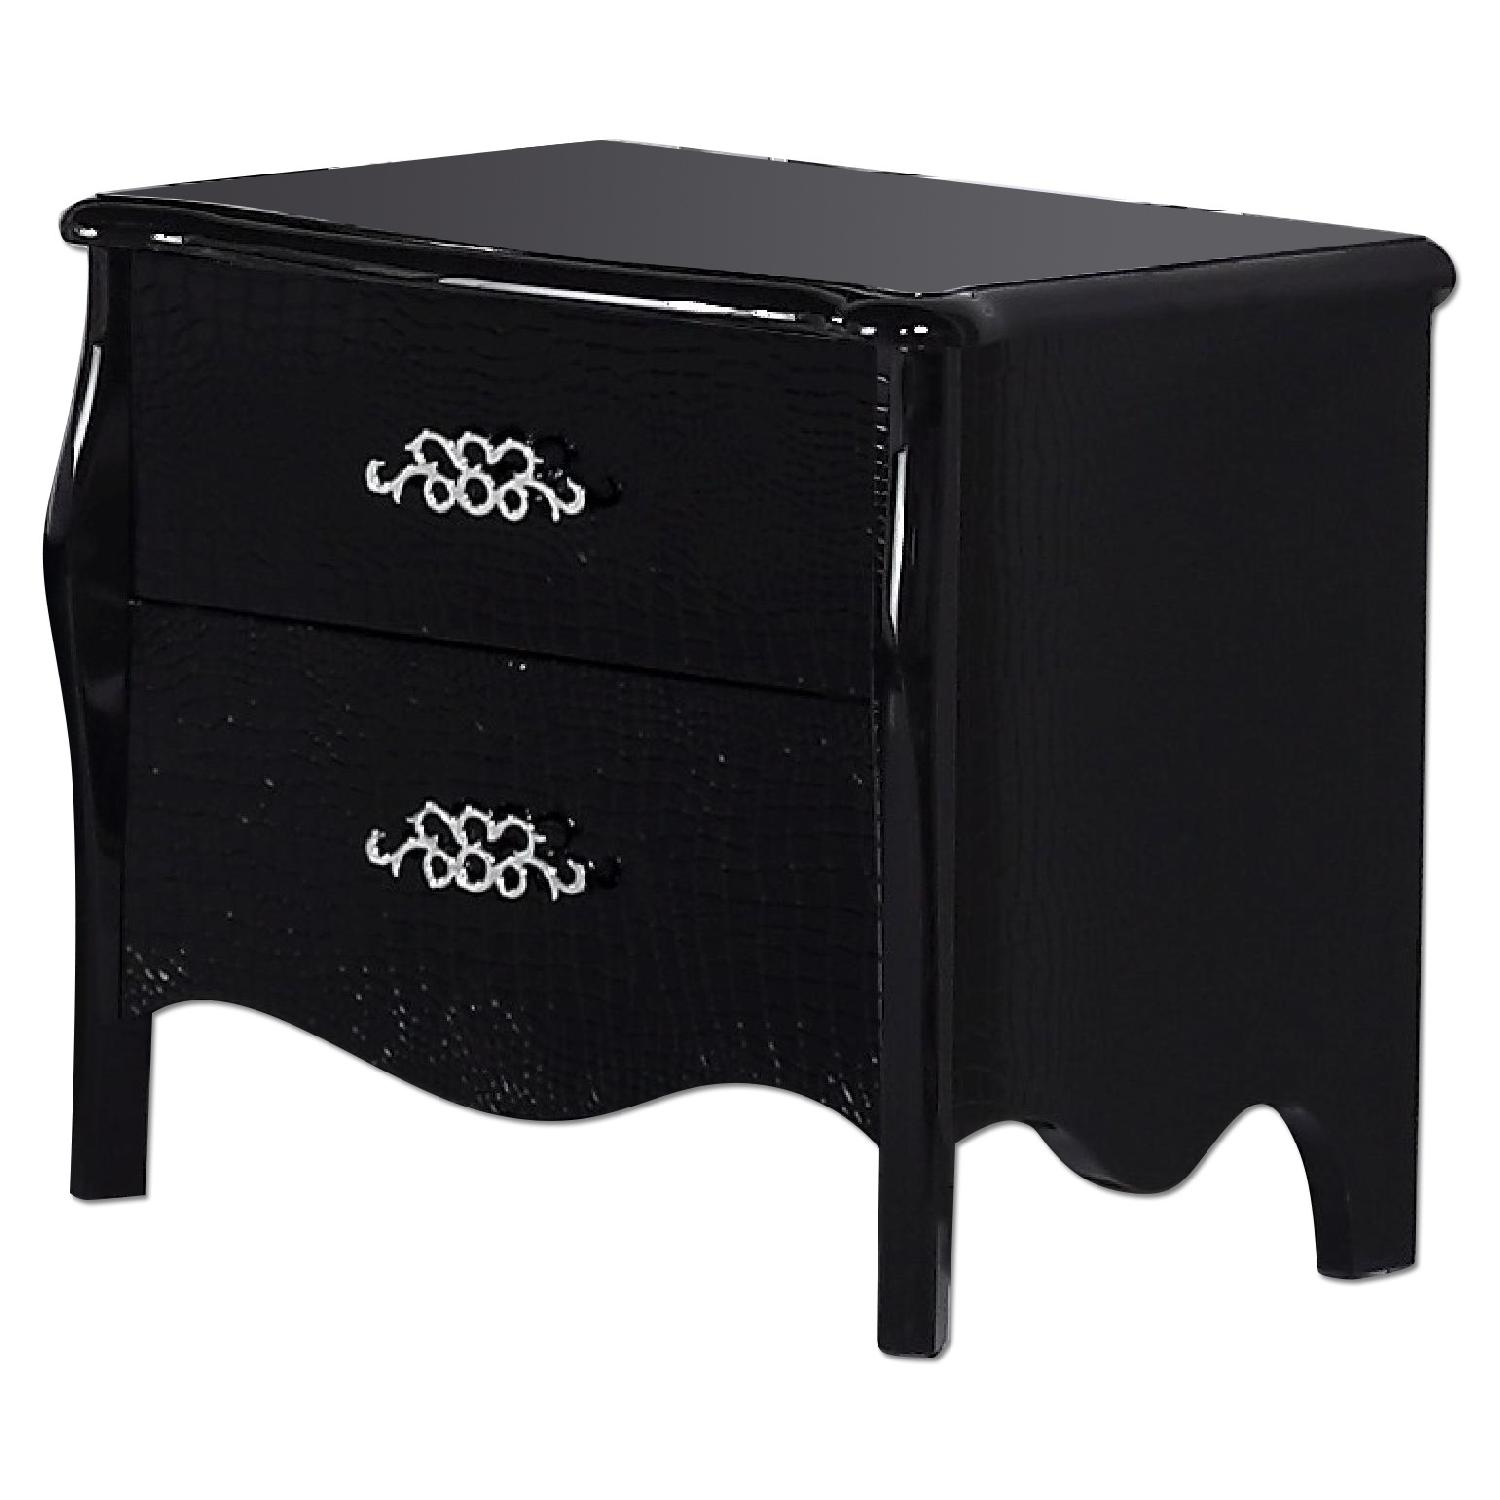 Neo-Classical Style 2-Drawer Nightstand in High Gloss Black Finish w/ Crocodile Patterns